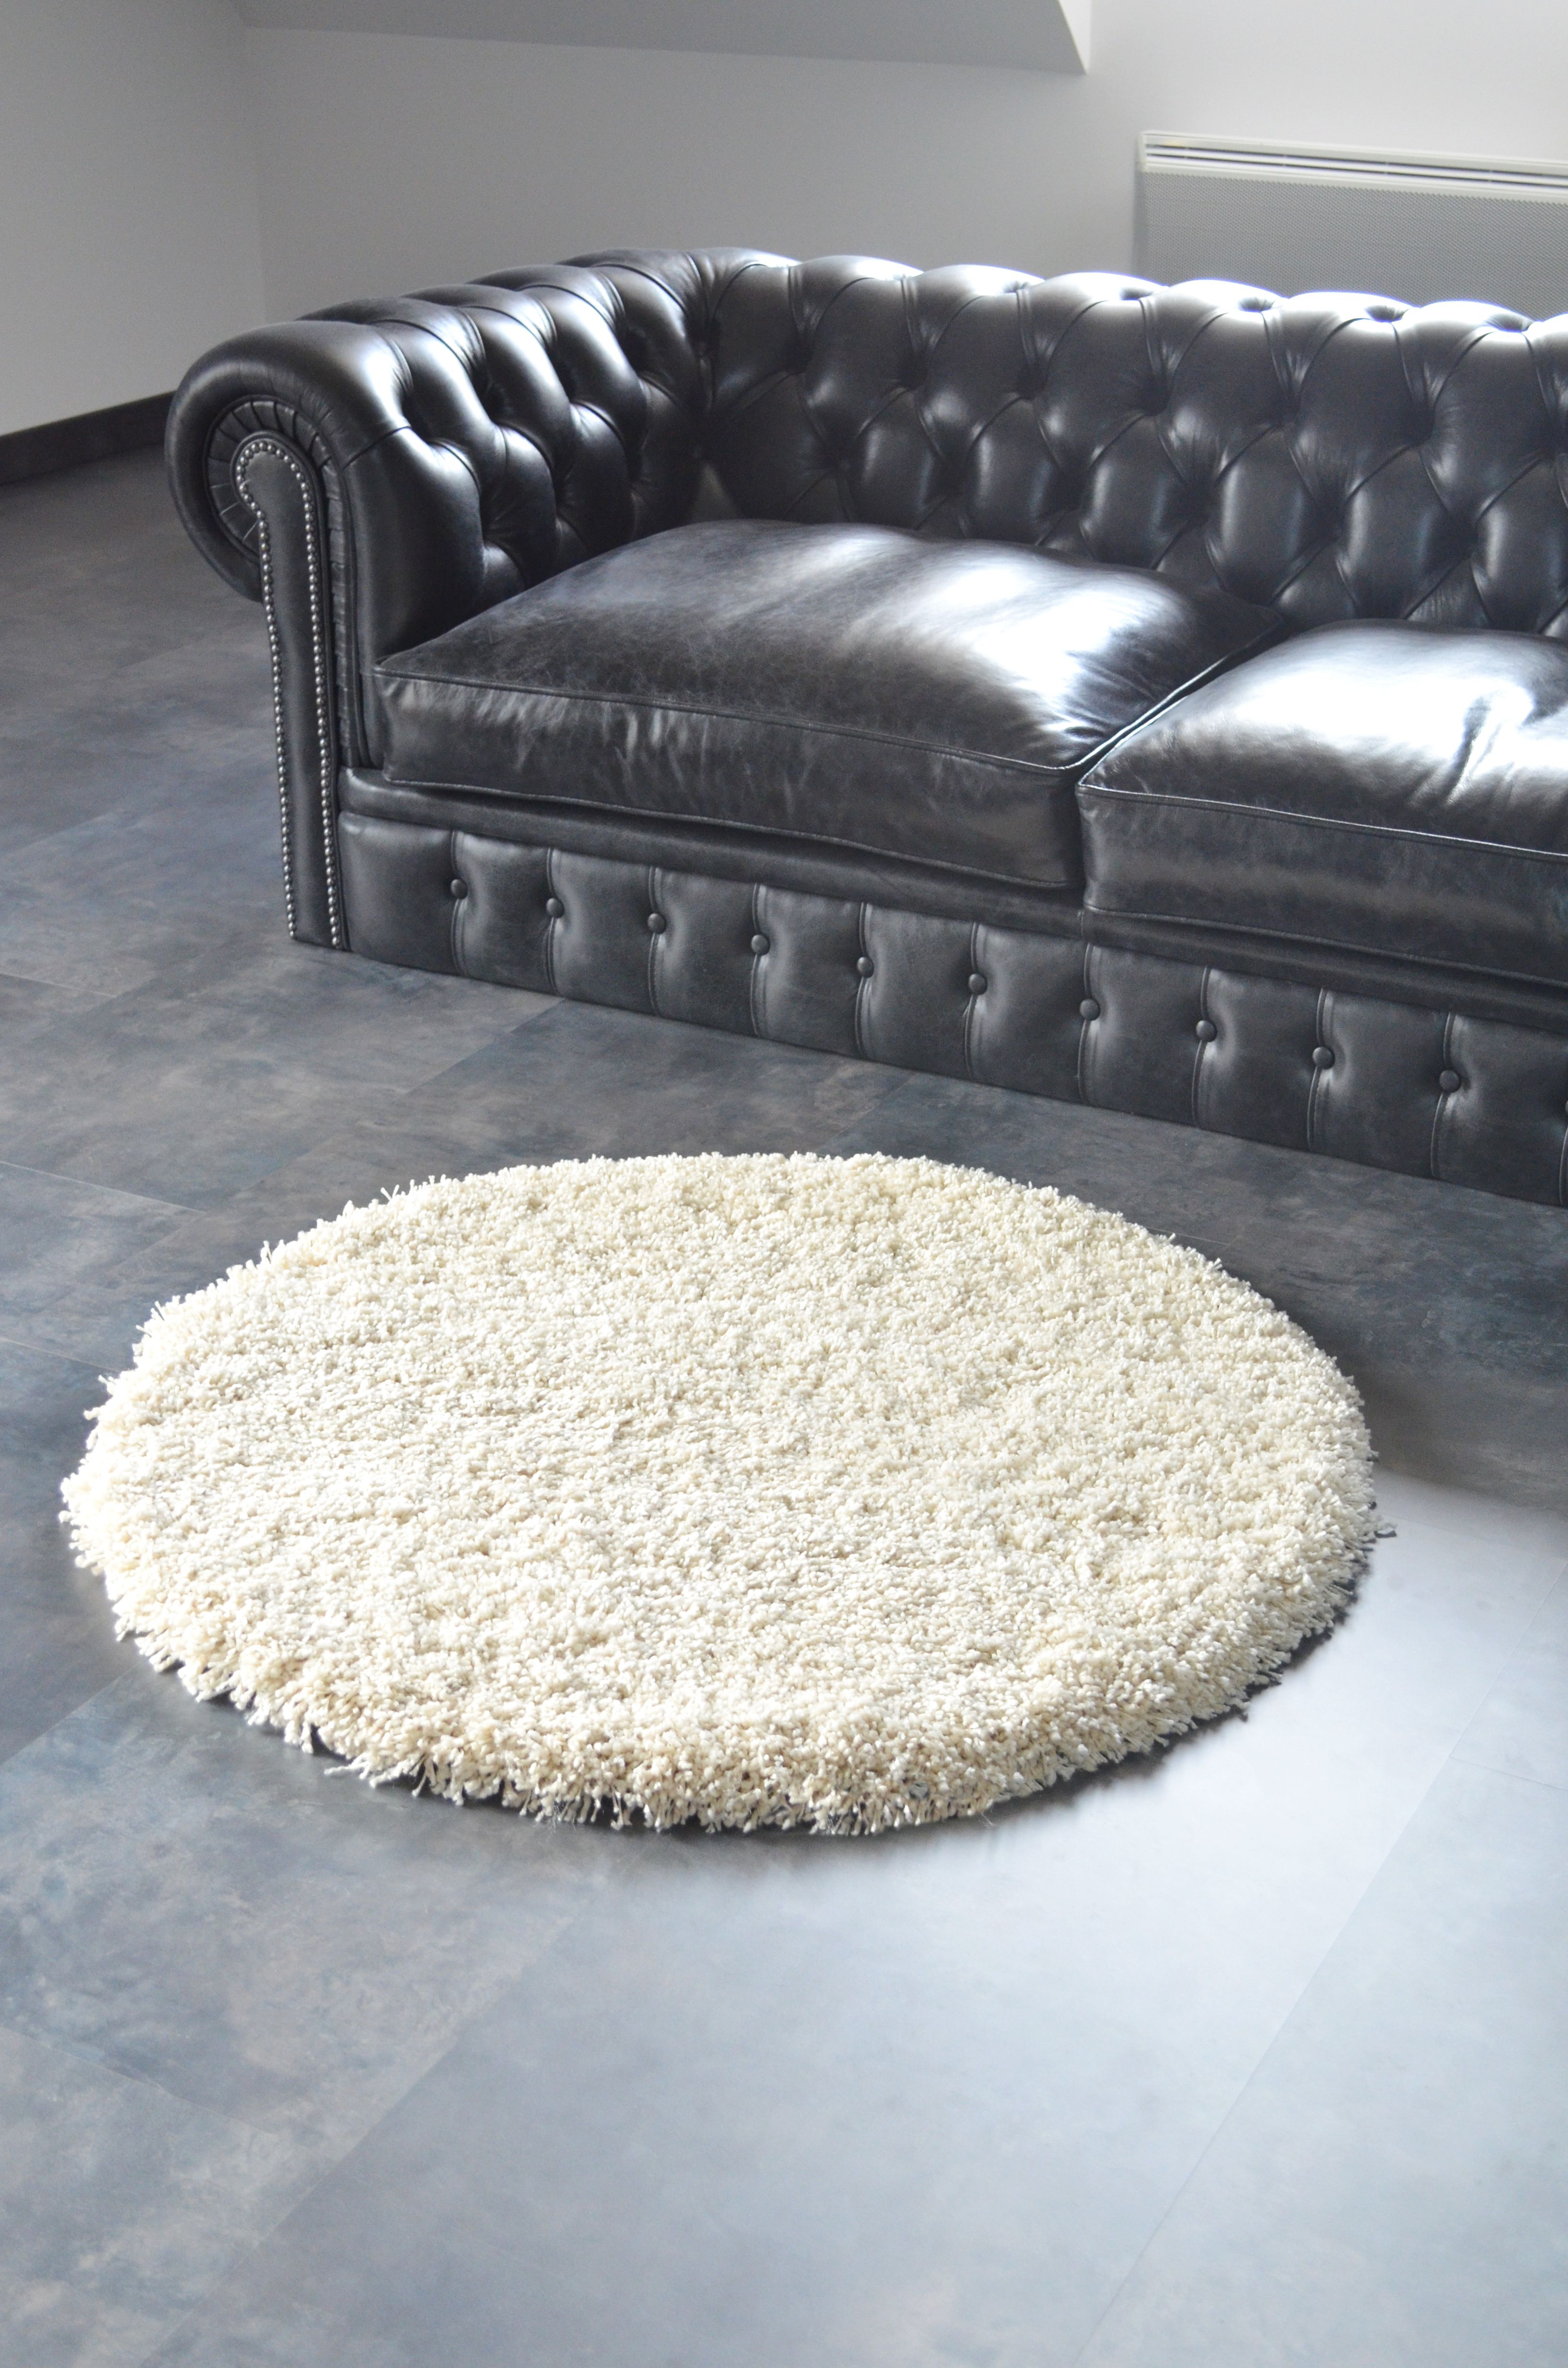 Ambiance Cosy Pour Ce Tapis Rond Sweety Shaggy Tapis Sur Mesure